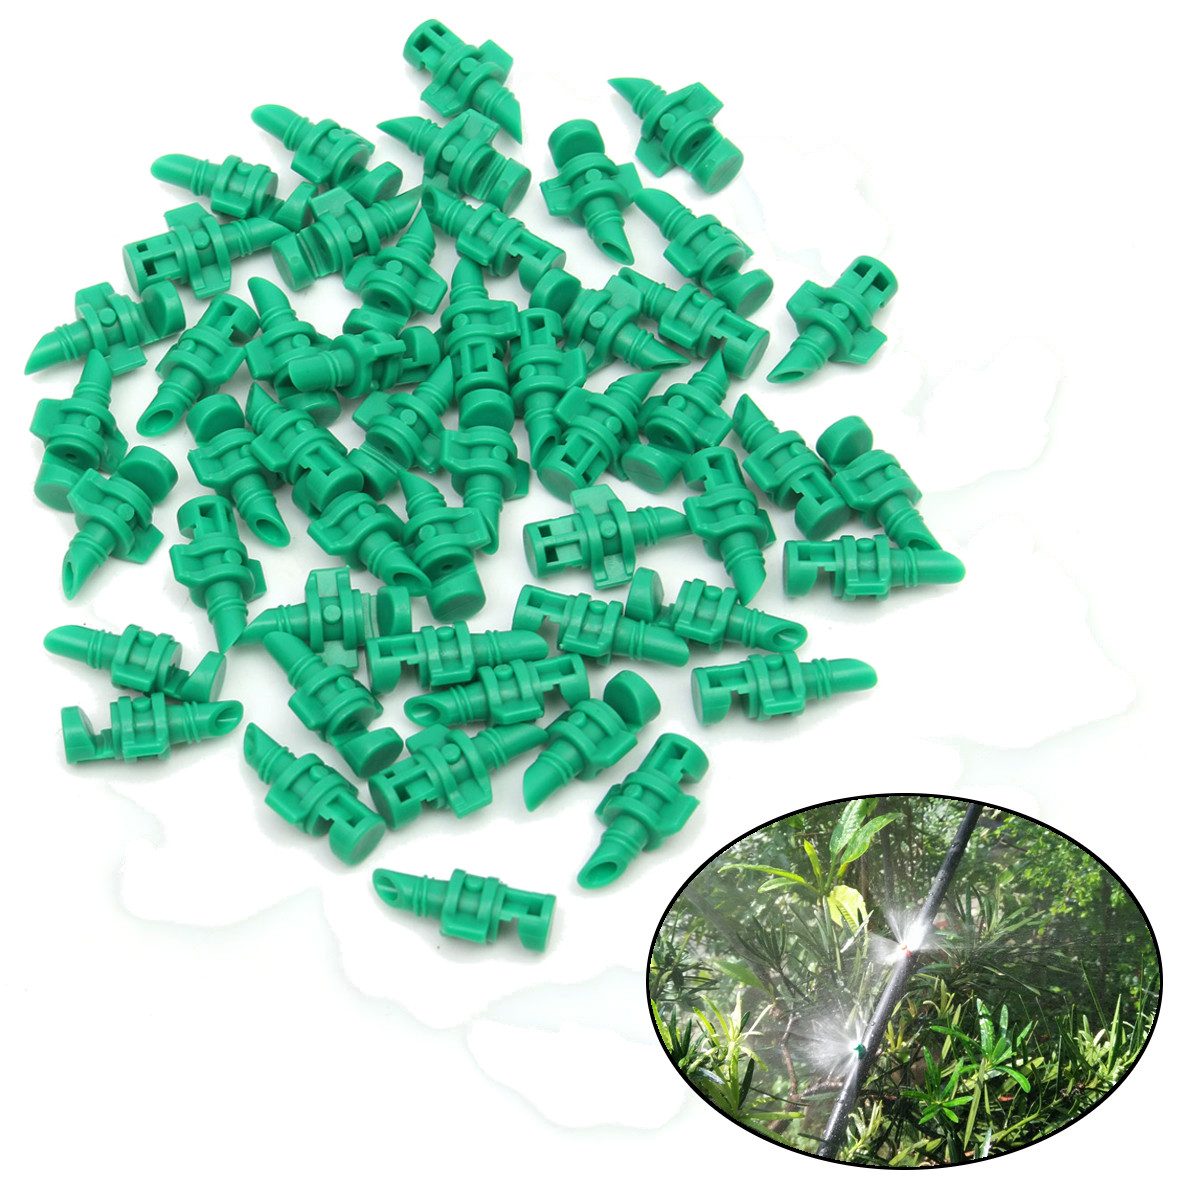 50Pcs Micro Garden Lawn Water Spray Misting Nozzle Sprinkler Irrigation System by